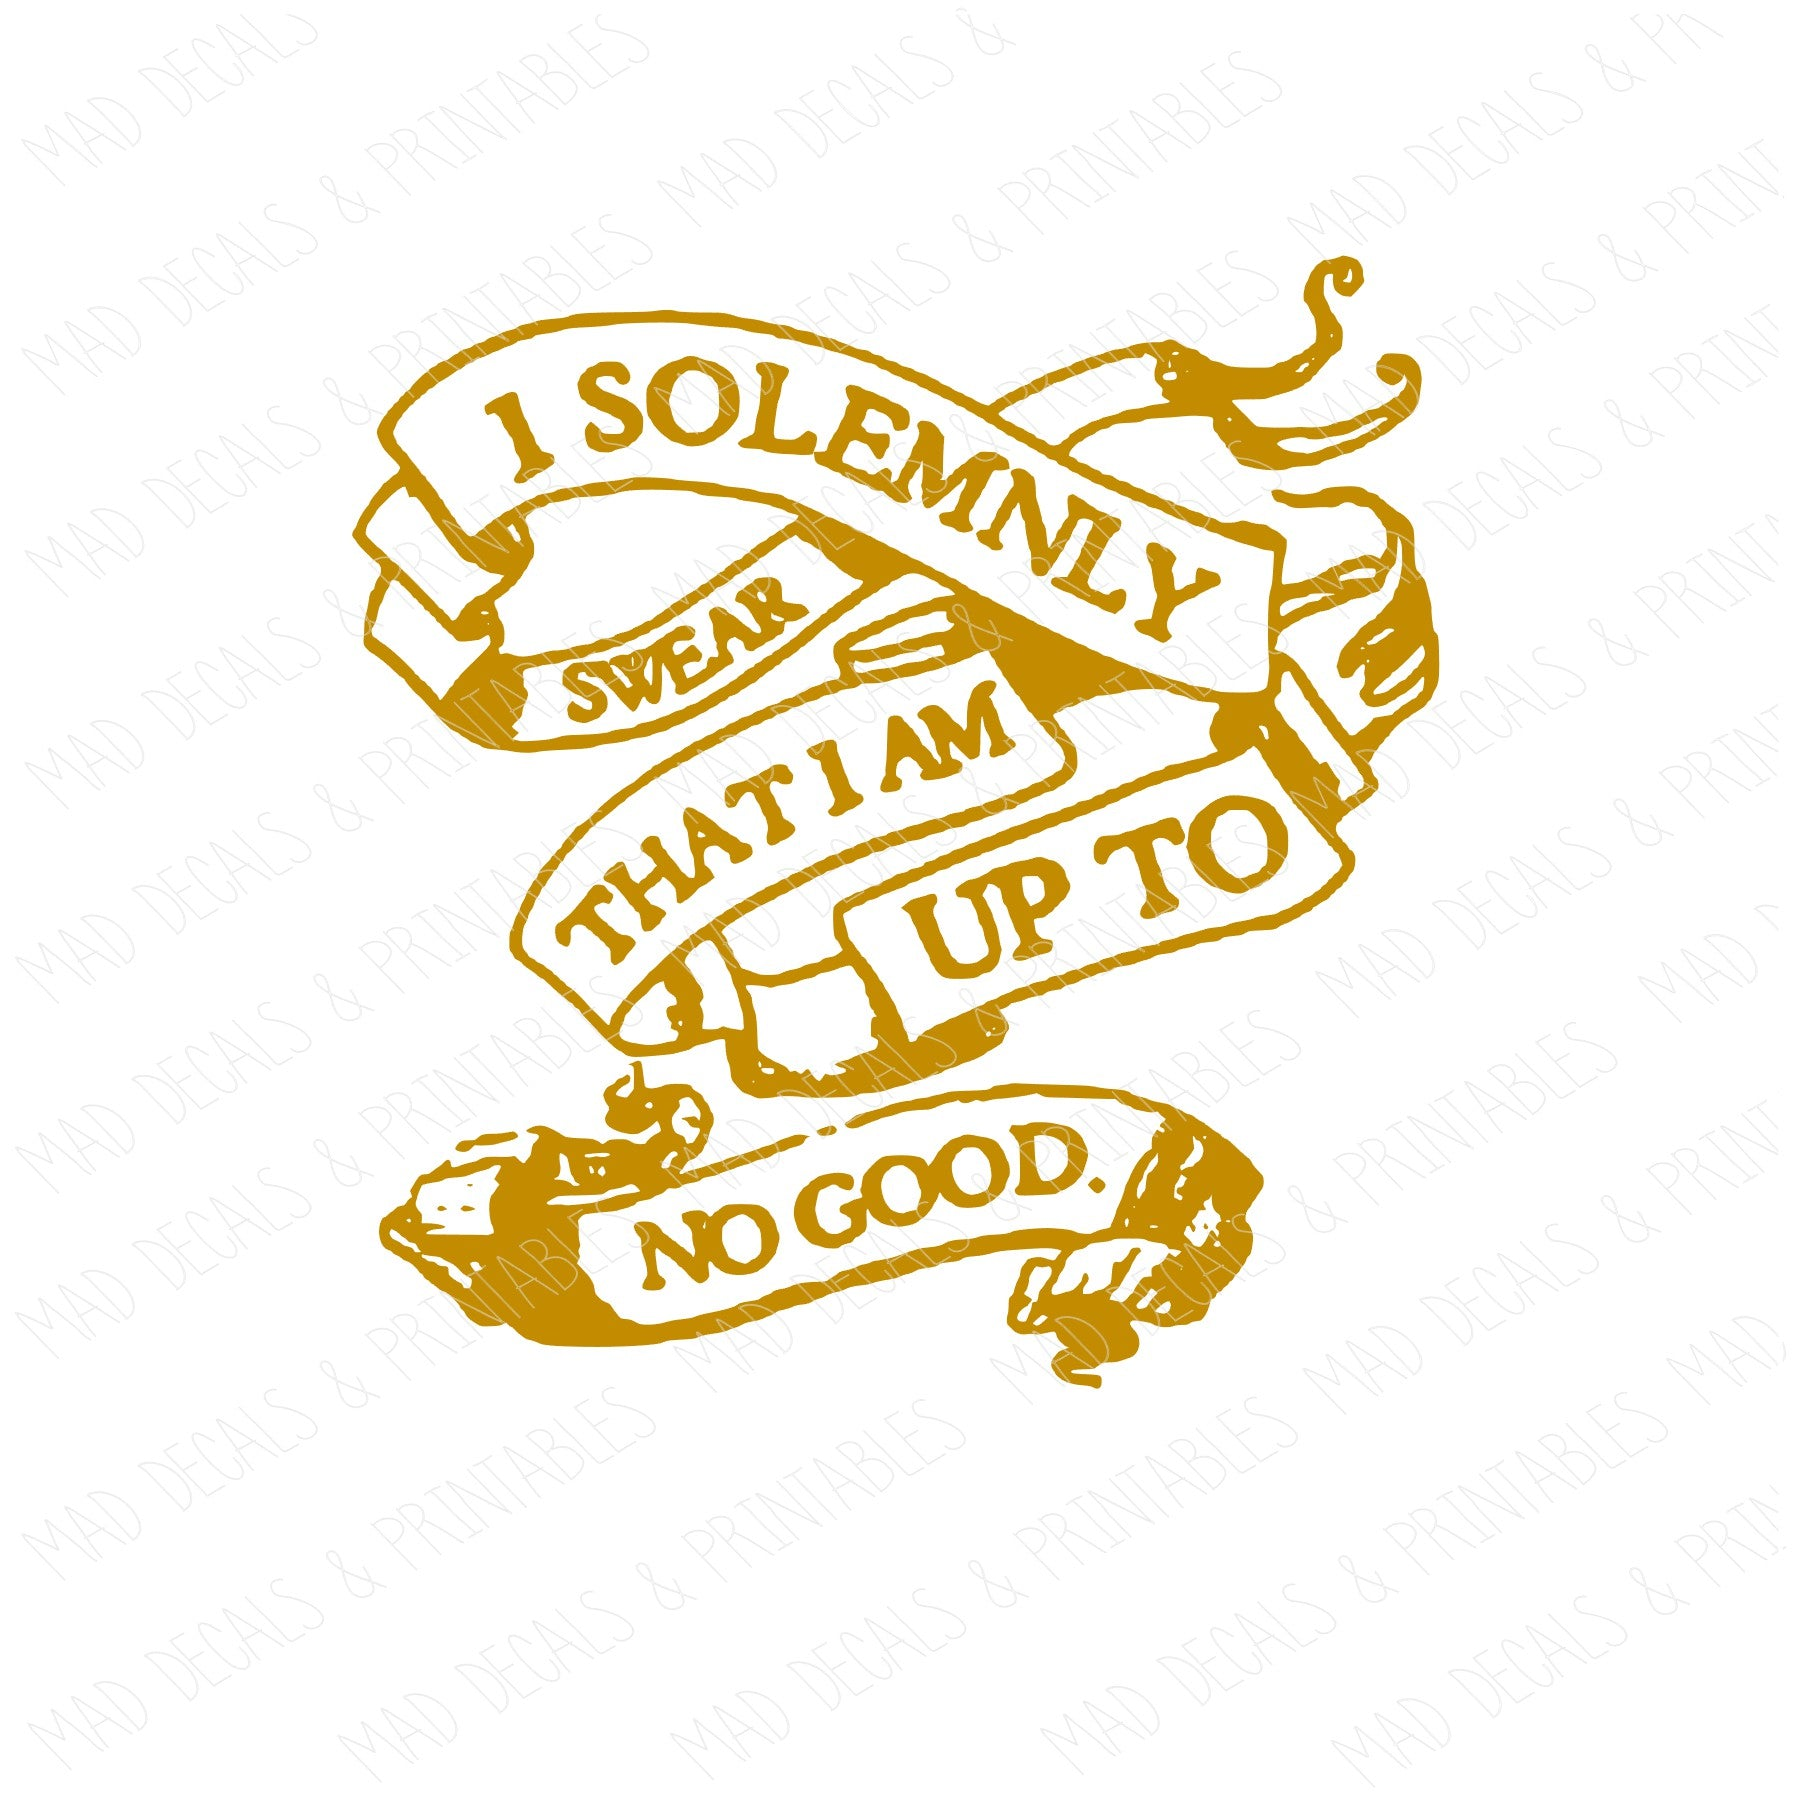 Solemnly Swear-Digital Download